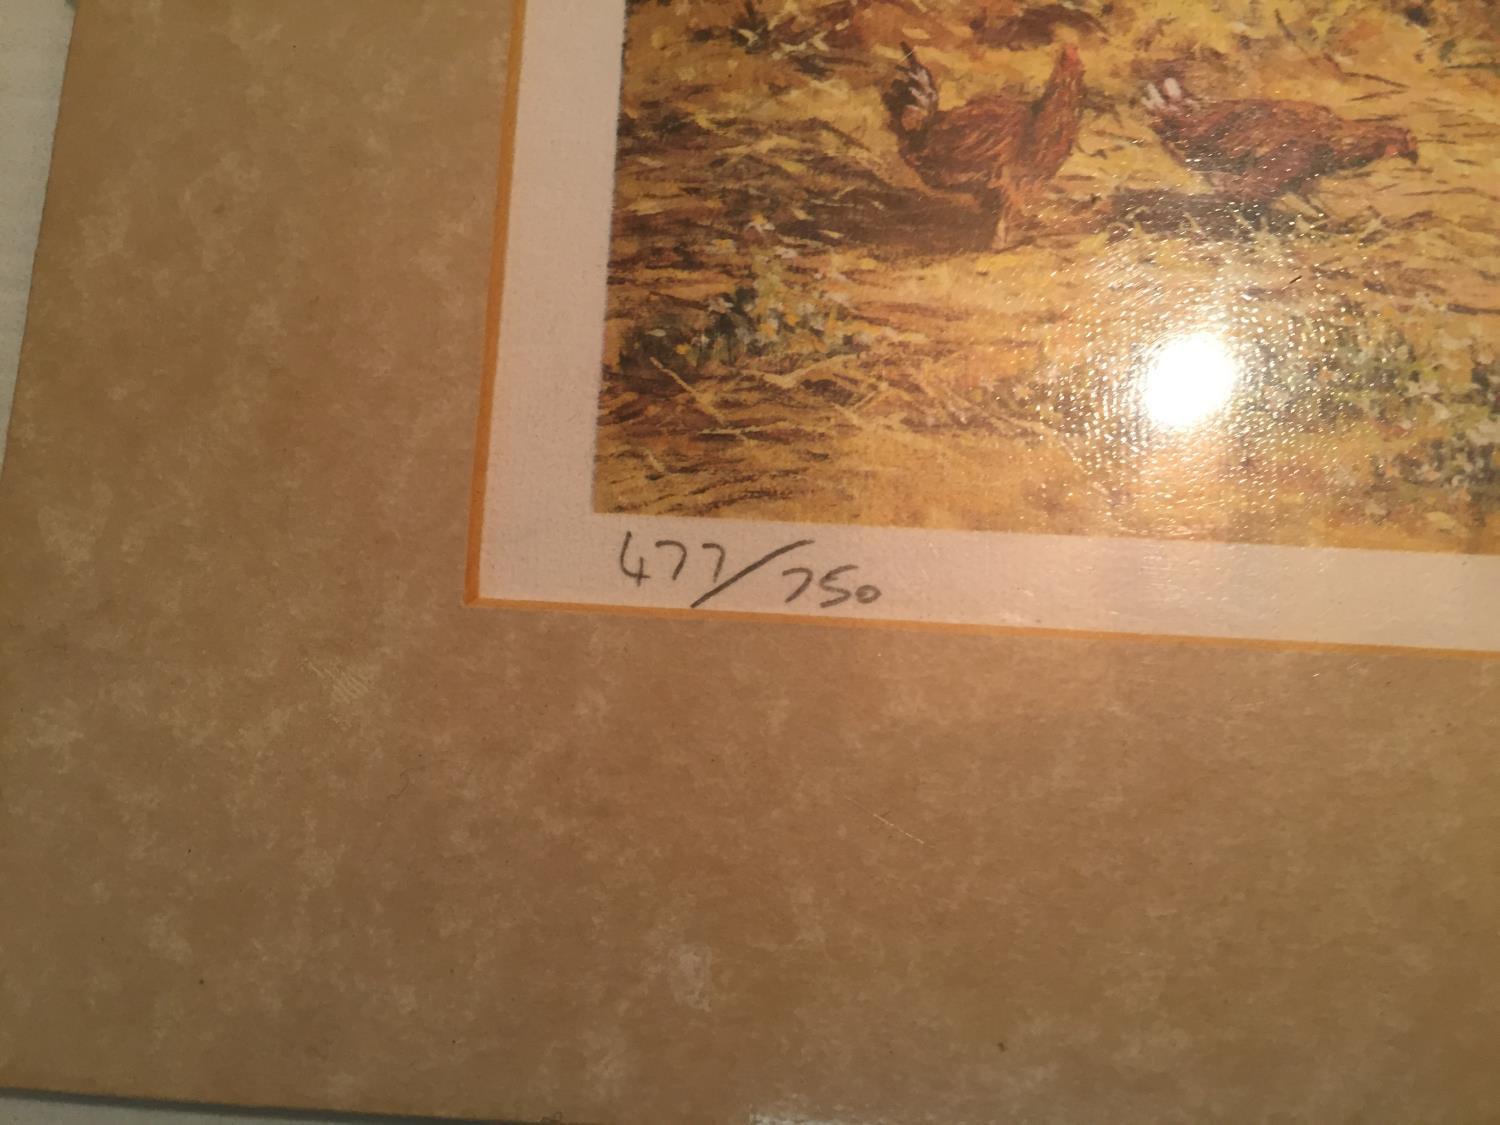 THREE MOUNTED SIGNED PRINTS OF FARM SCENES IN A HARDBACK PROTECTIVE FOLDER - Image 11 of 12